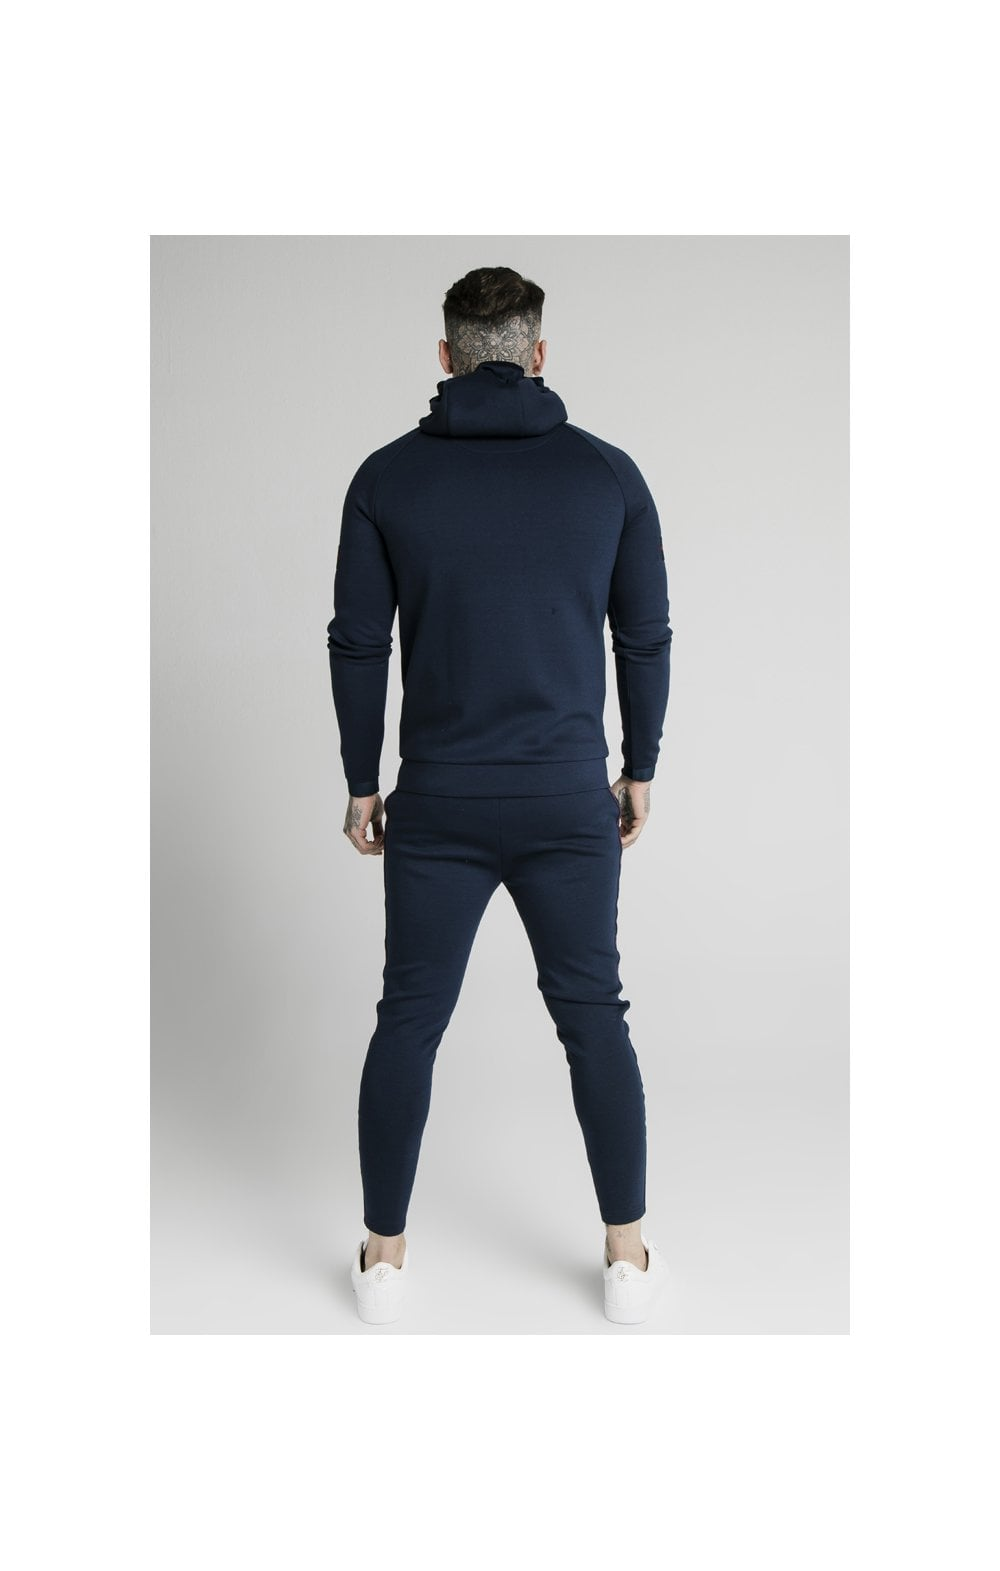 SikSilk Exposed Tape Zip Through Hoodie- Navy (6)